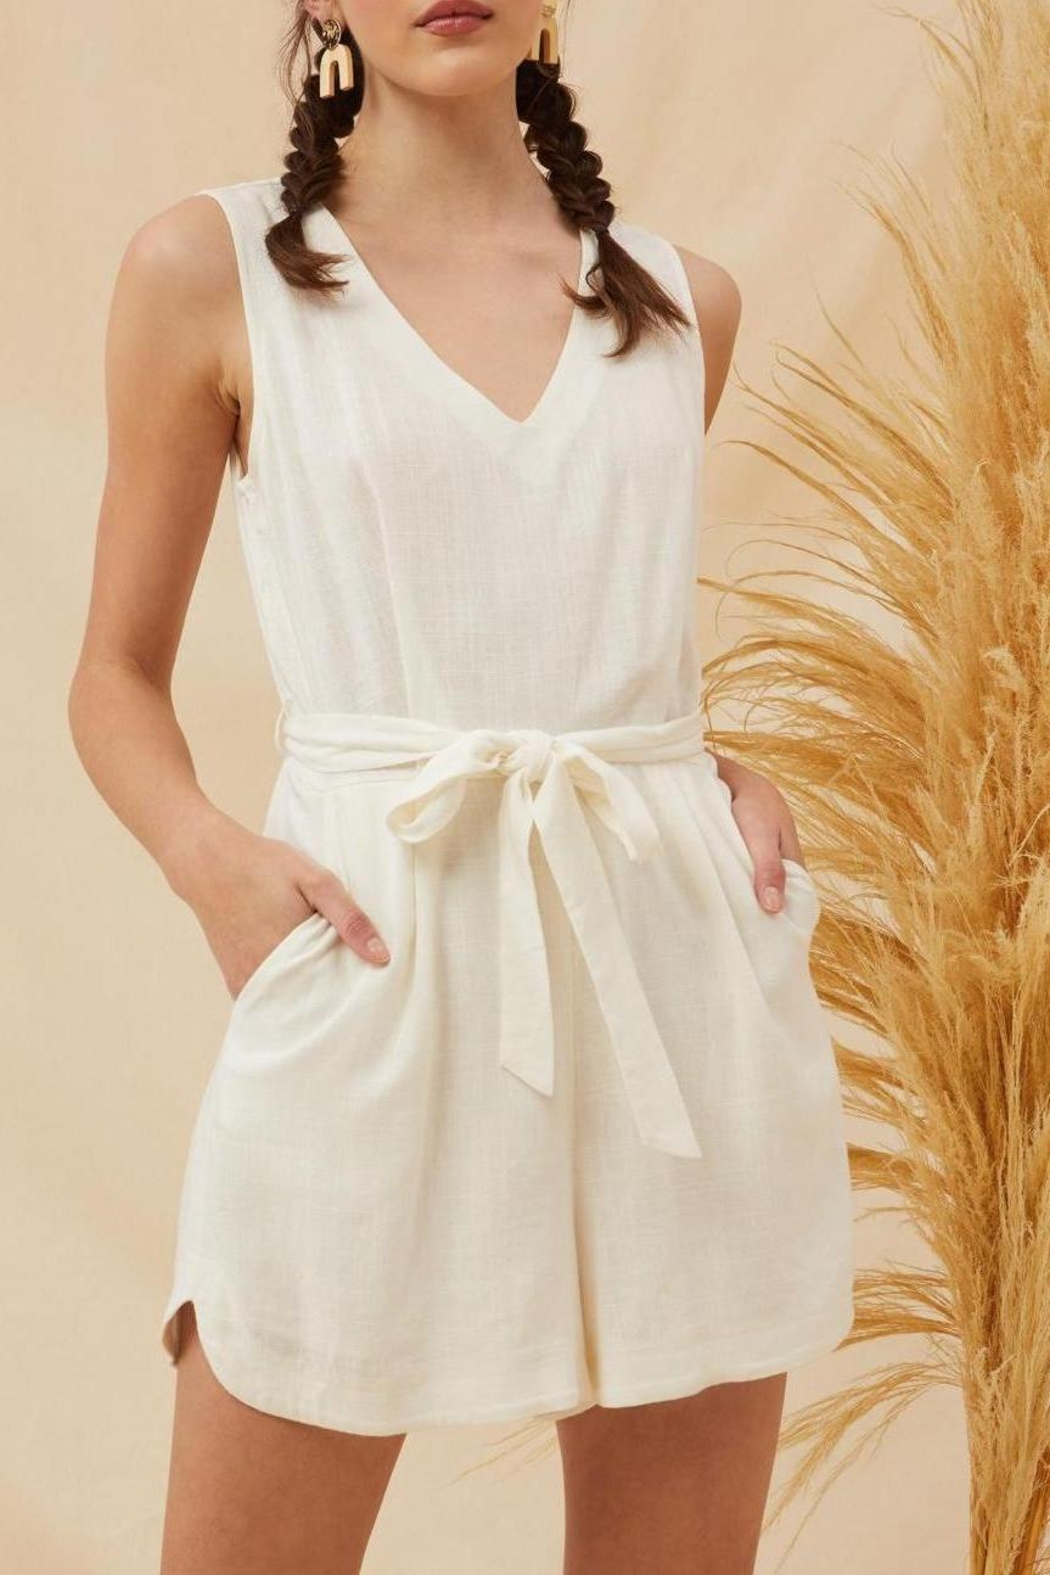 Lush Lorraine Linen Chic Ivory Tie Front Romper - Main Image